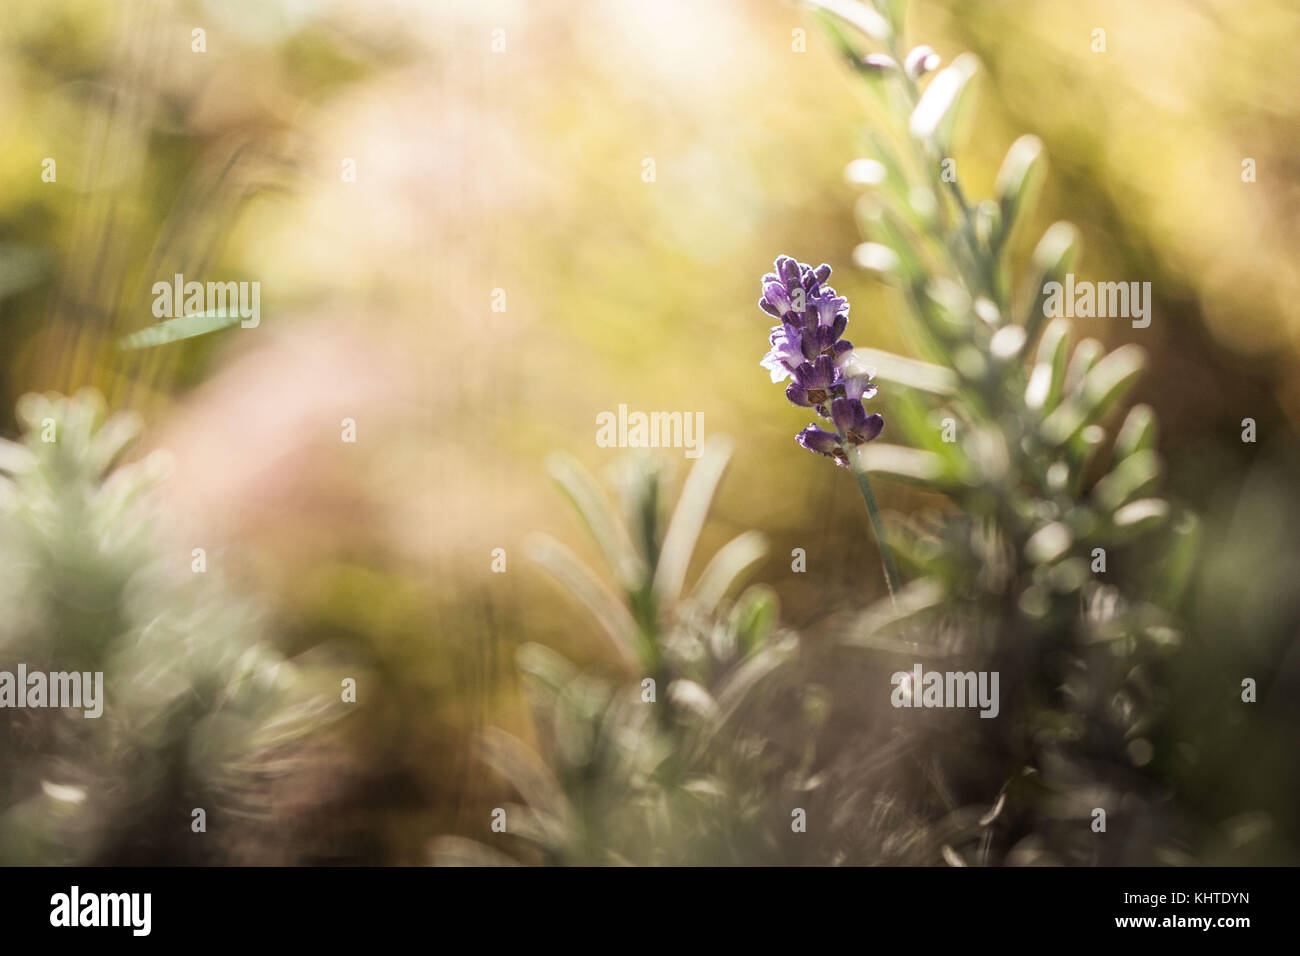 Lavender, Lavandula flowers with bokeh in the background. Unfocused background with warm colours - Stock Image